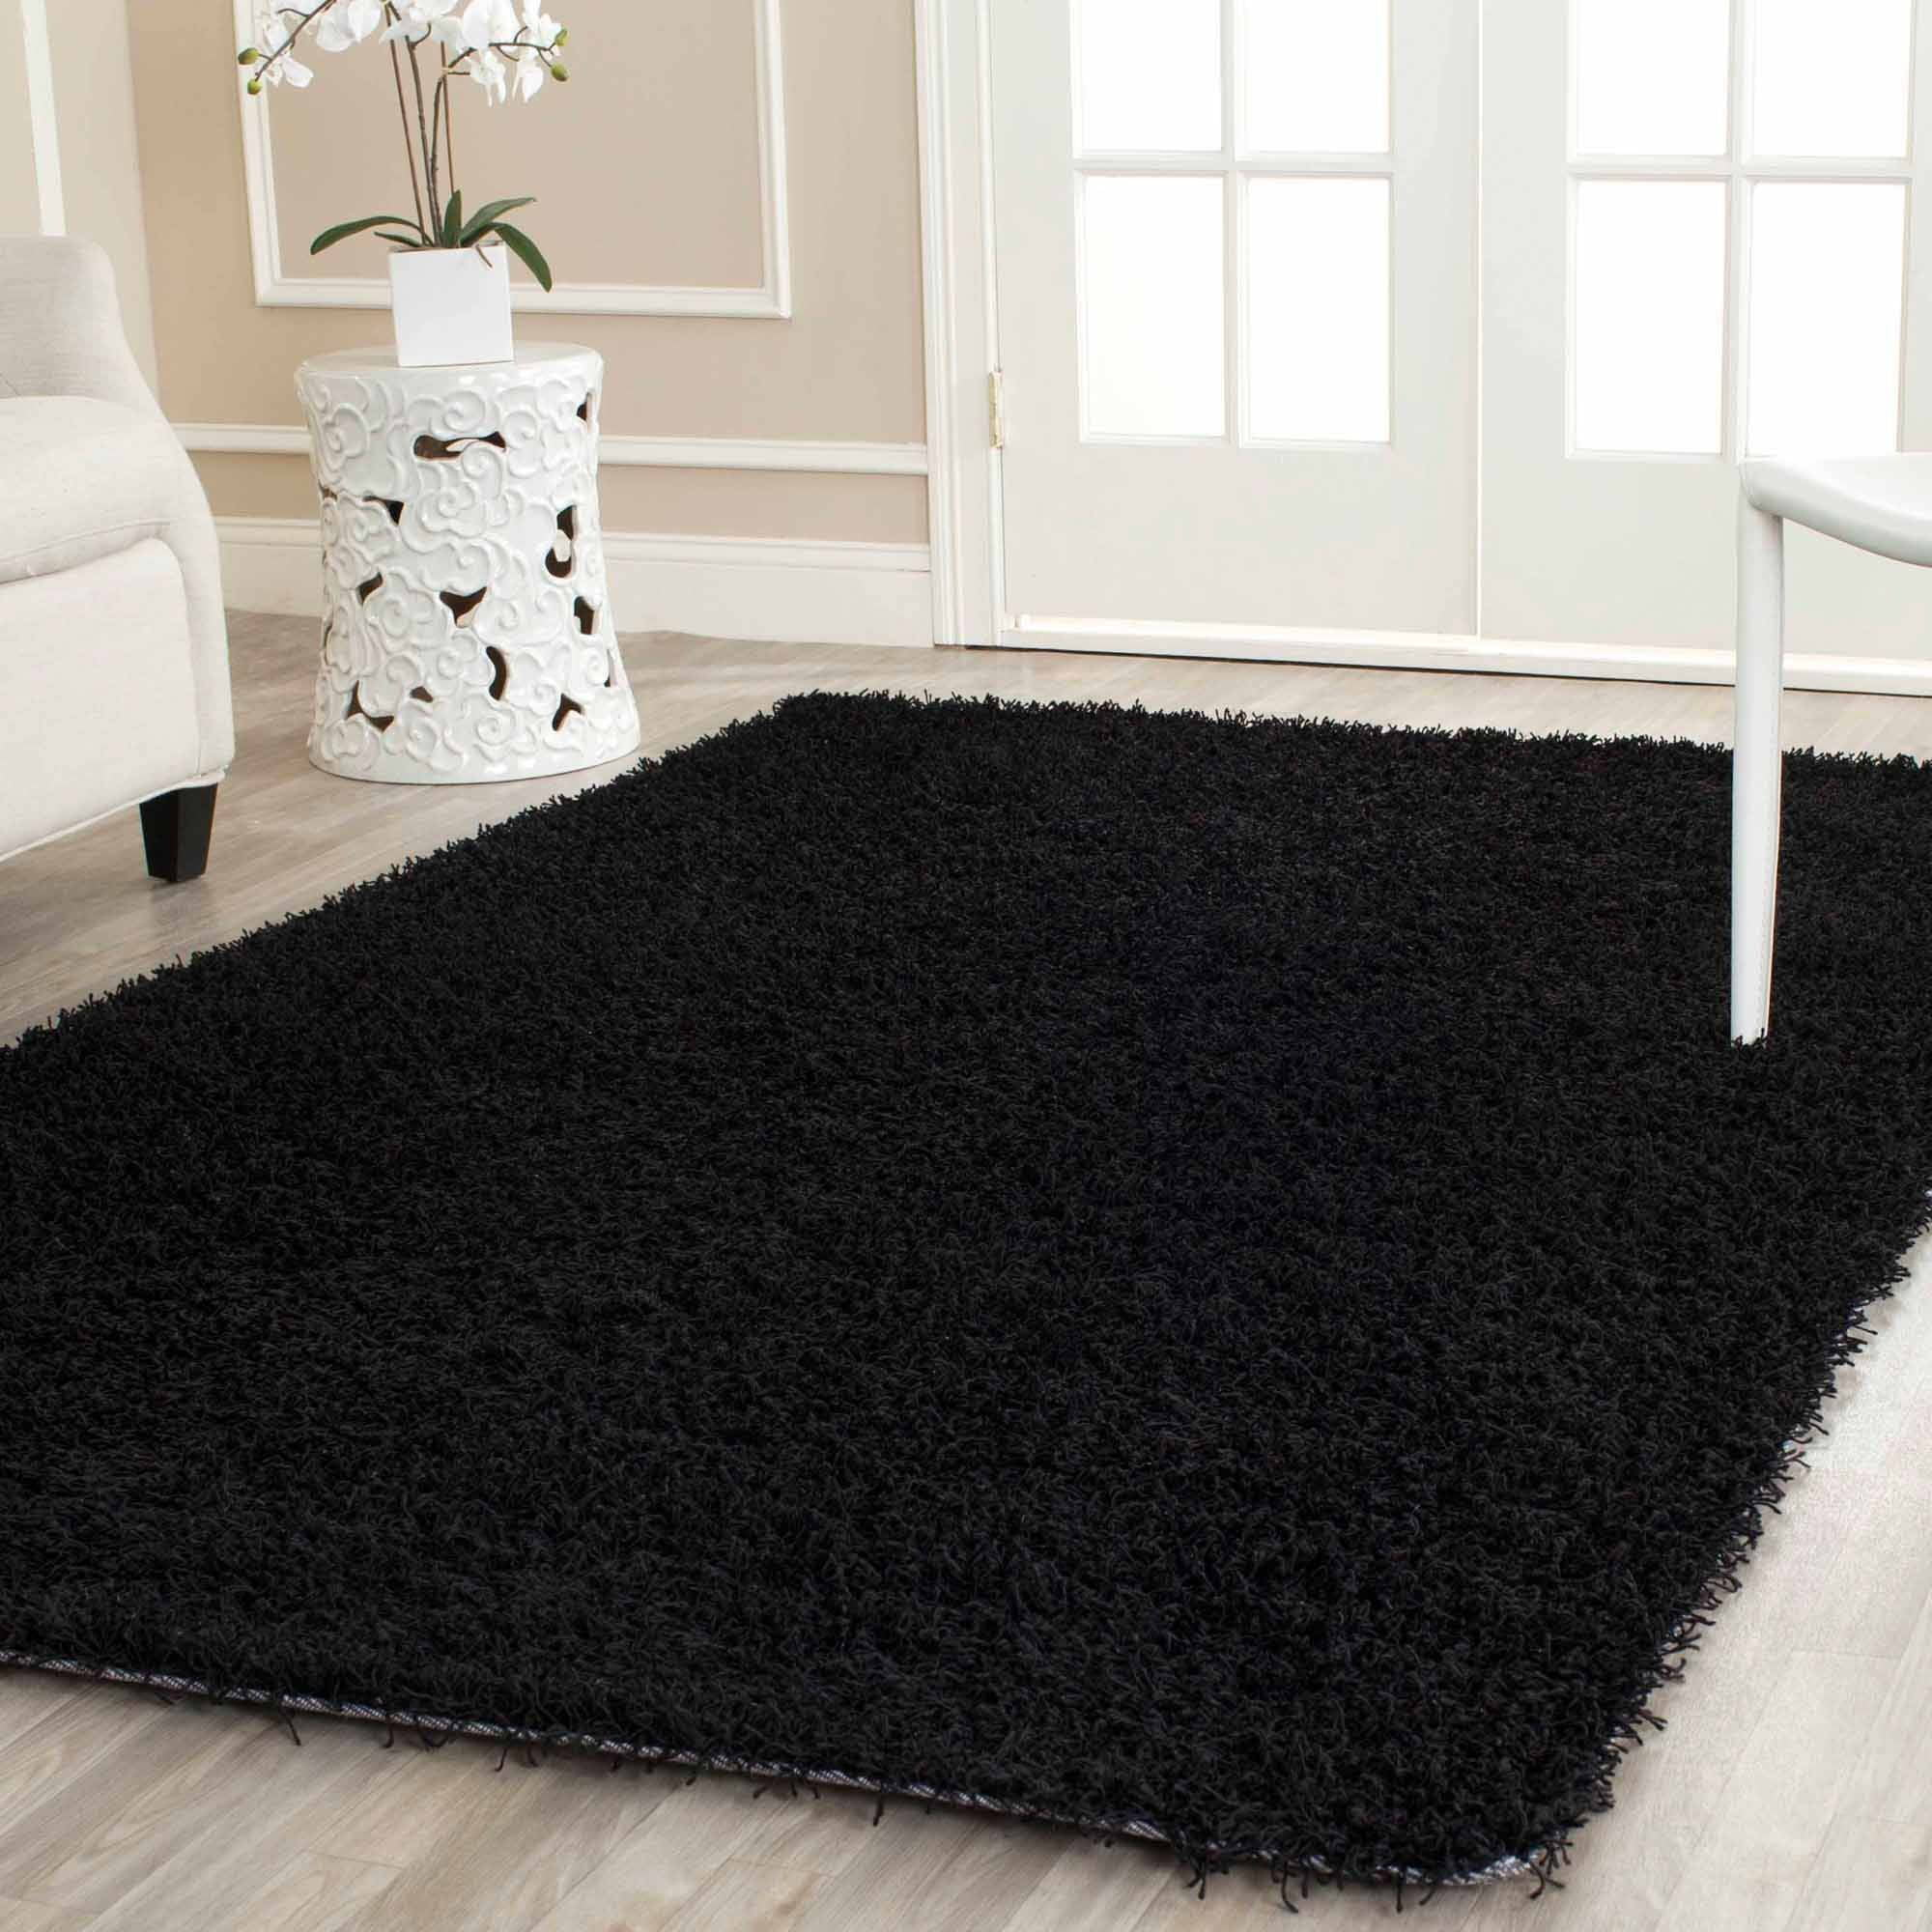 Design Black Rug mainstays manchester shag area rug or runner walmart com